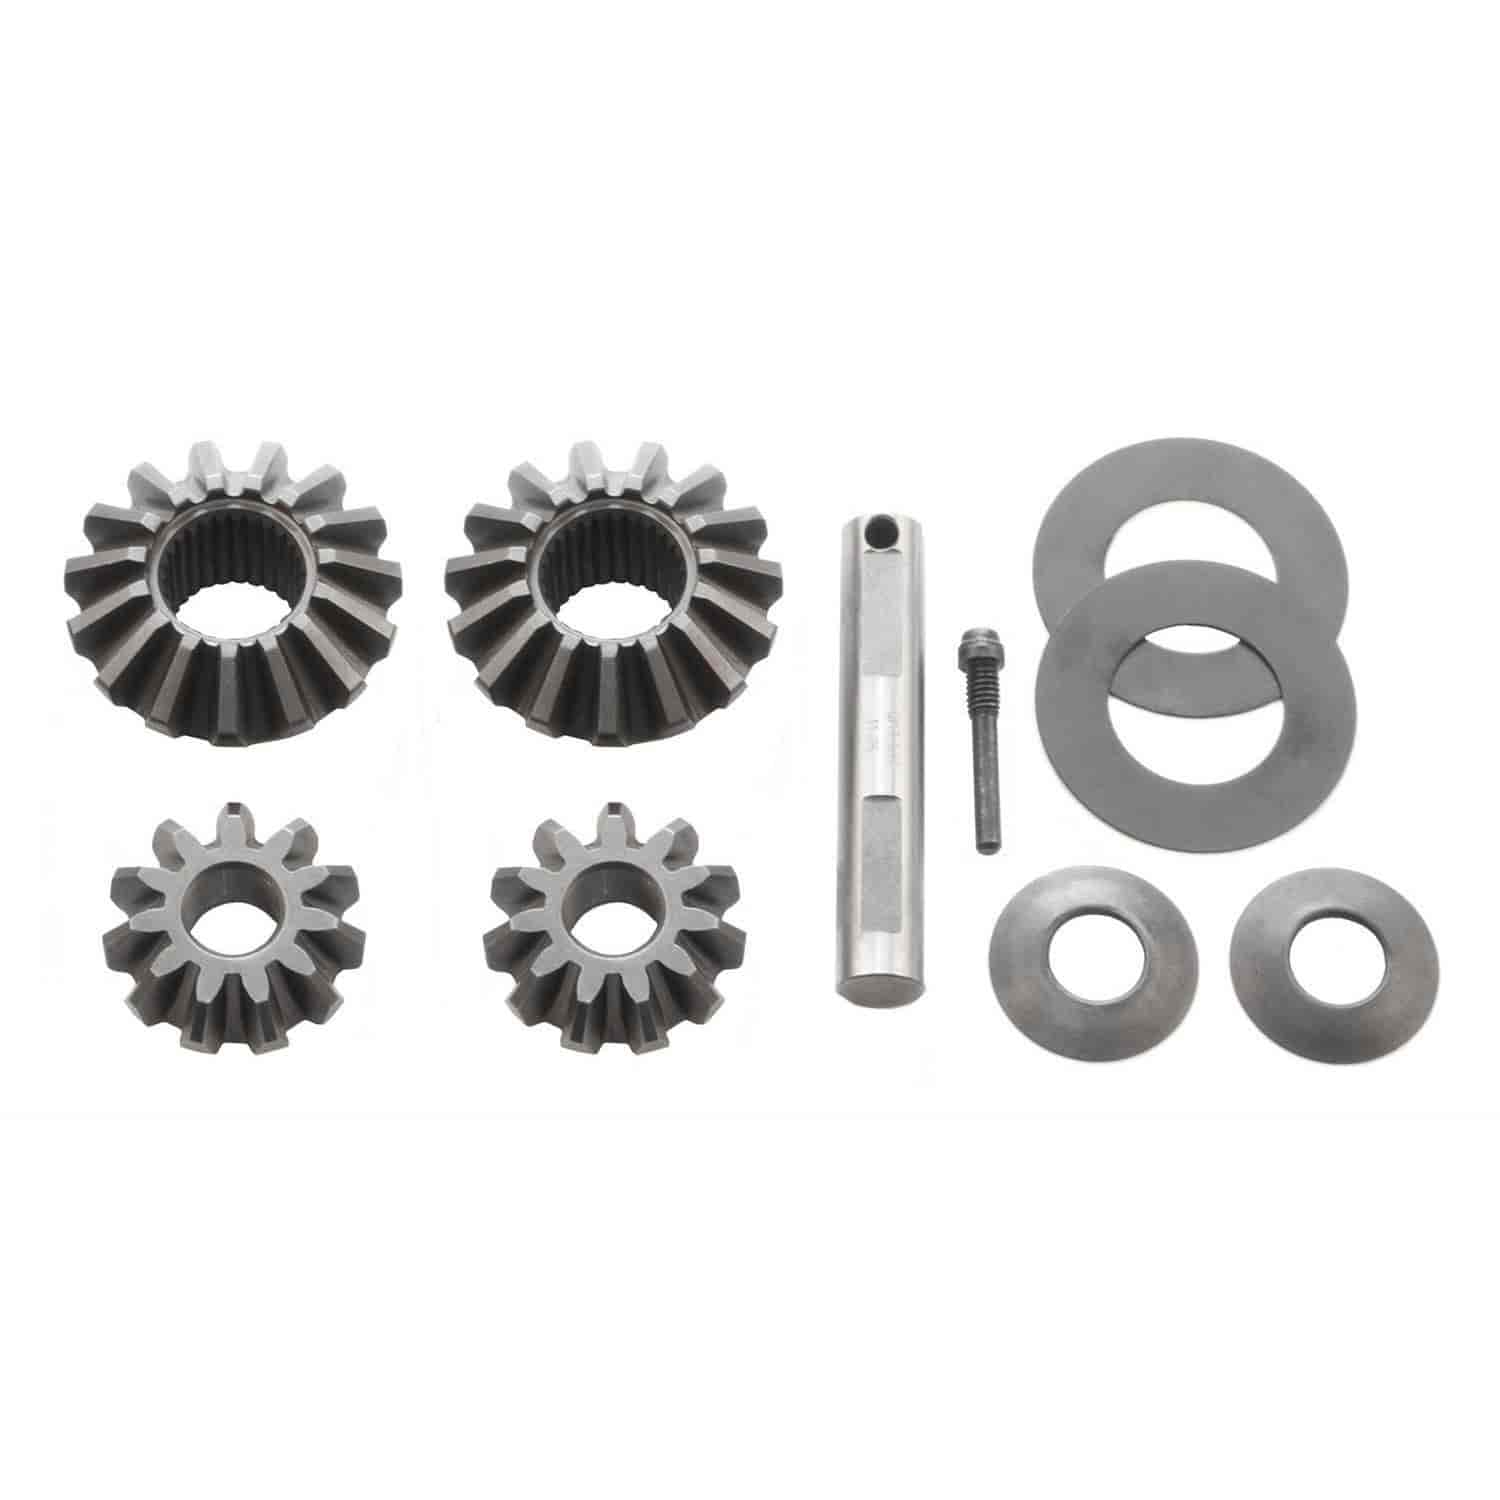 Motive Gear GM7.6BI - Motive Gear Internal Kits